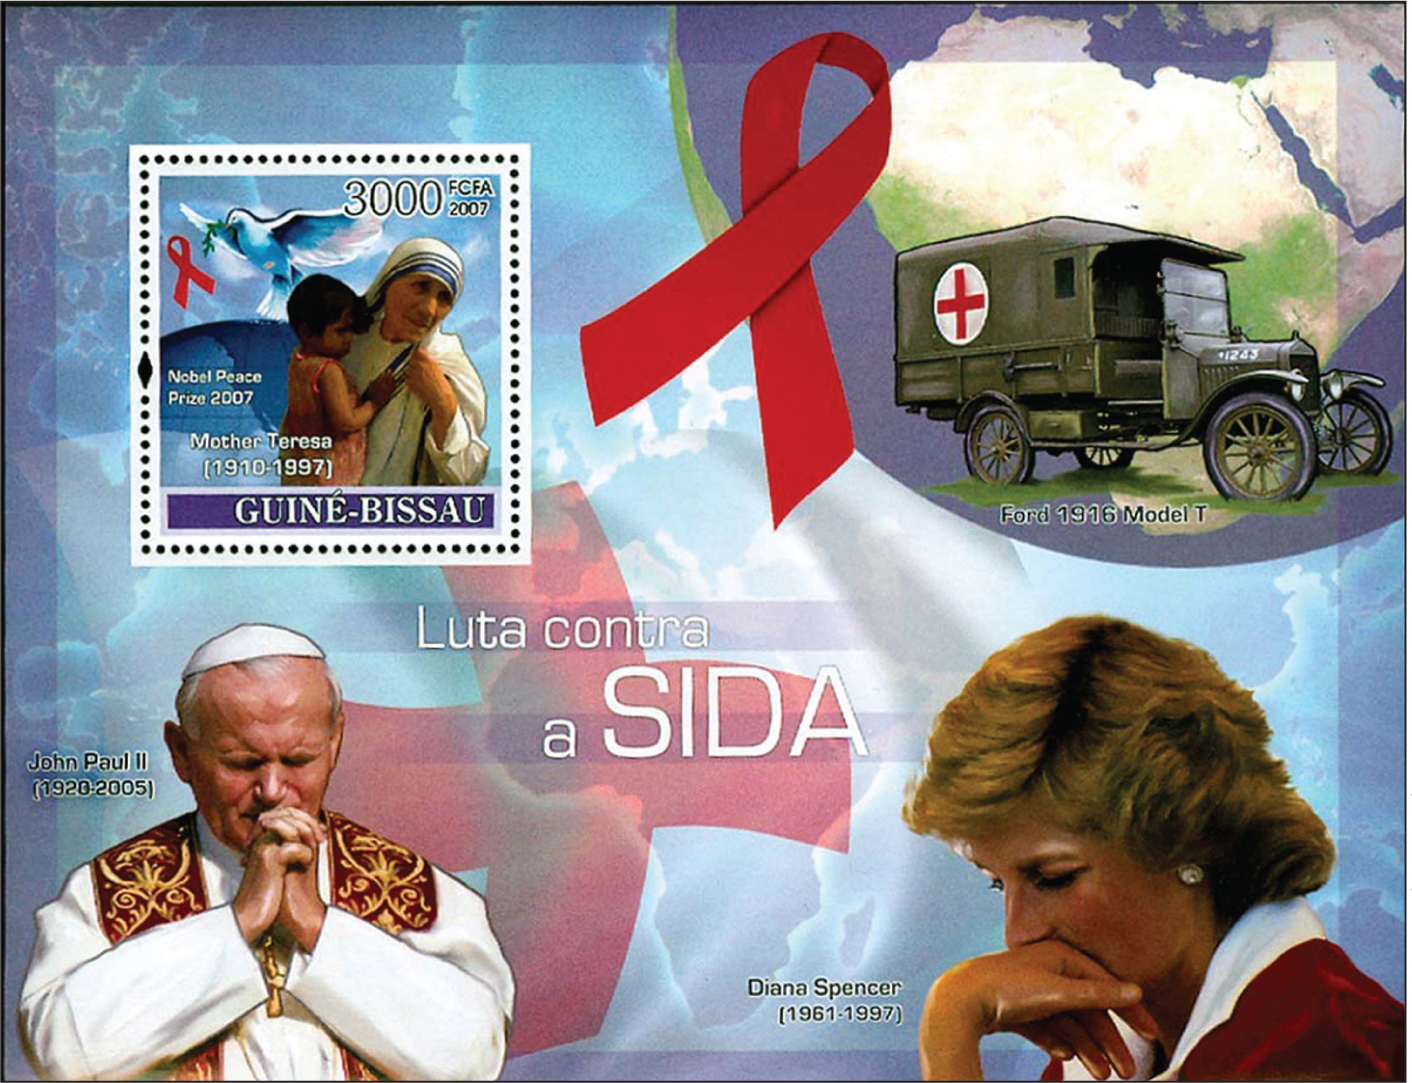 Souvenir sheet from Guine-Bissau portrays a child with the late Mother Teresa (1910–1997), Princess Diana (1961–1997), and Pope John Paul II (1920–2005), along with a 1916 Ford Model A medical vehicle.All images courtesy of Stanford T. Shulman, MD. Reprinted with permission.